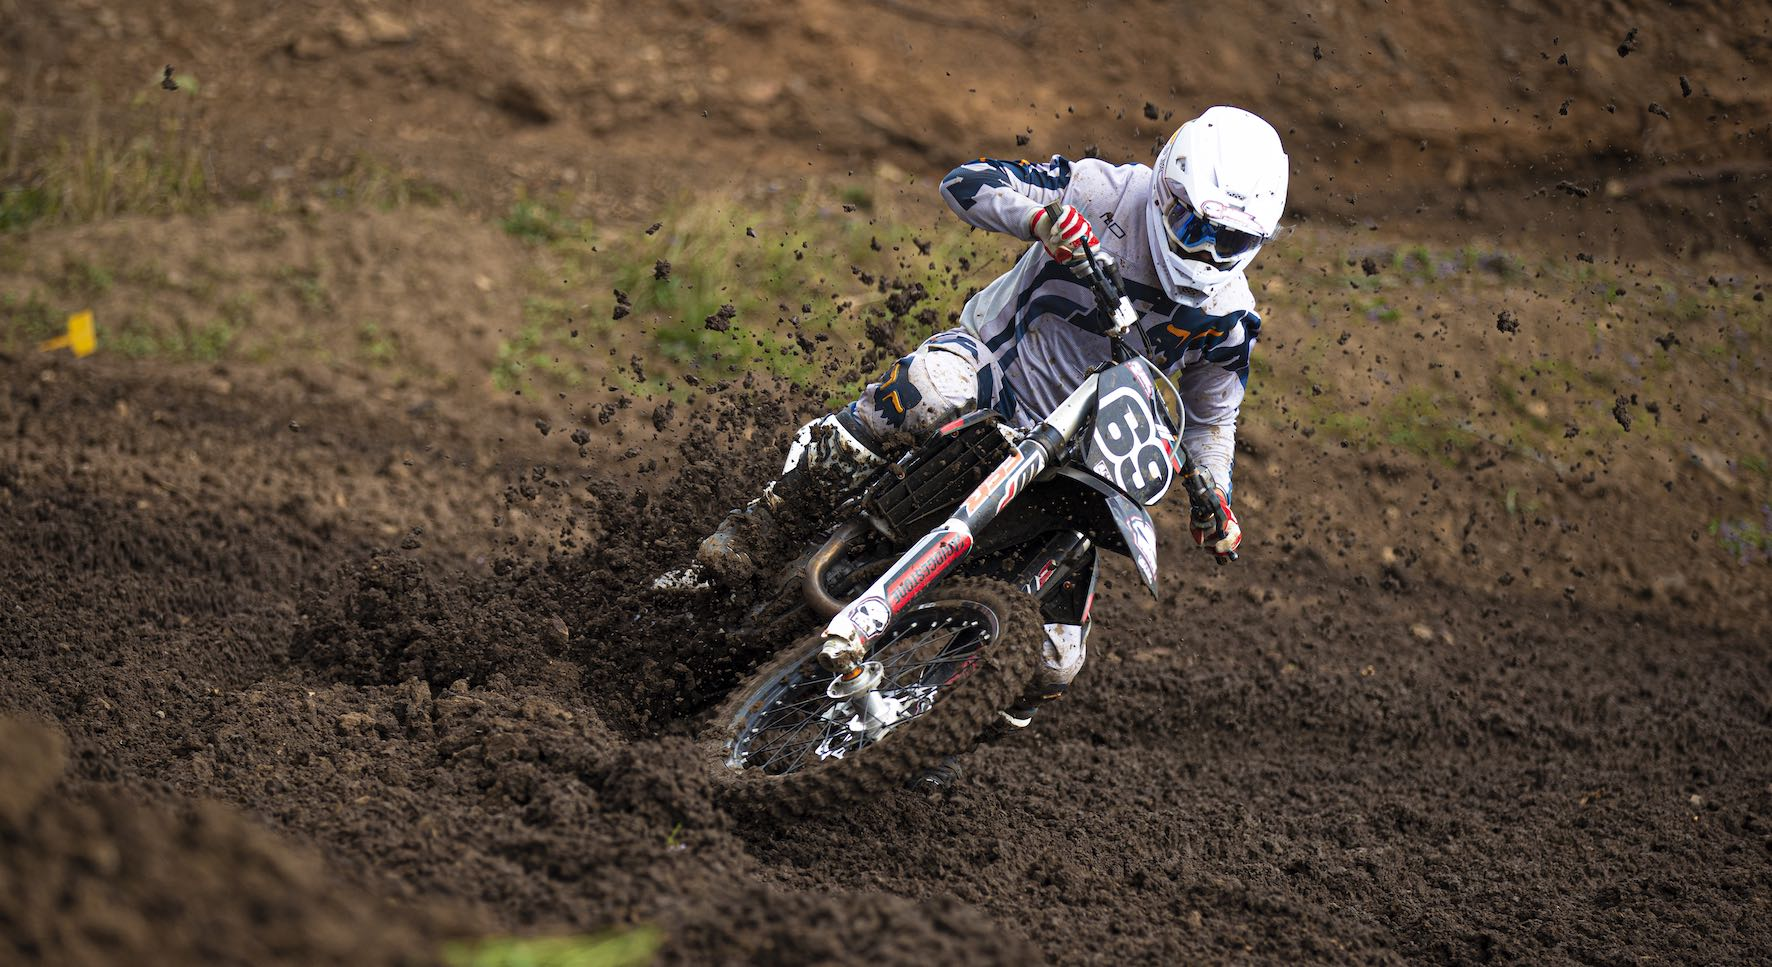 Wyatt Avis racing in the Motocross Nationals at Thunder Valley